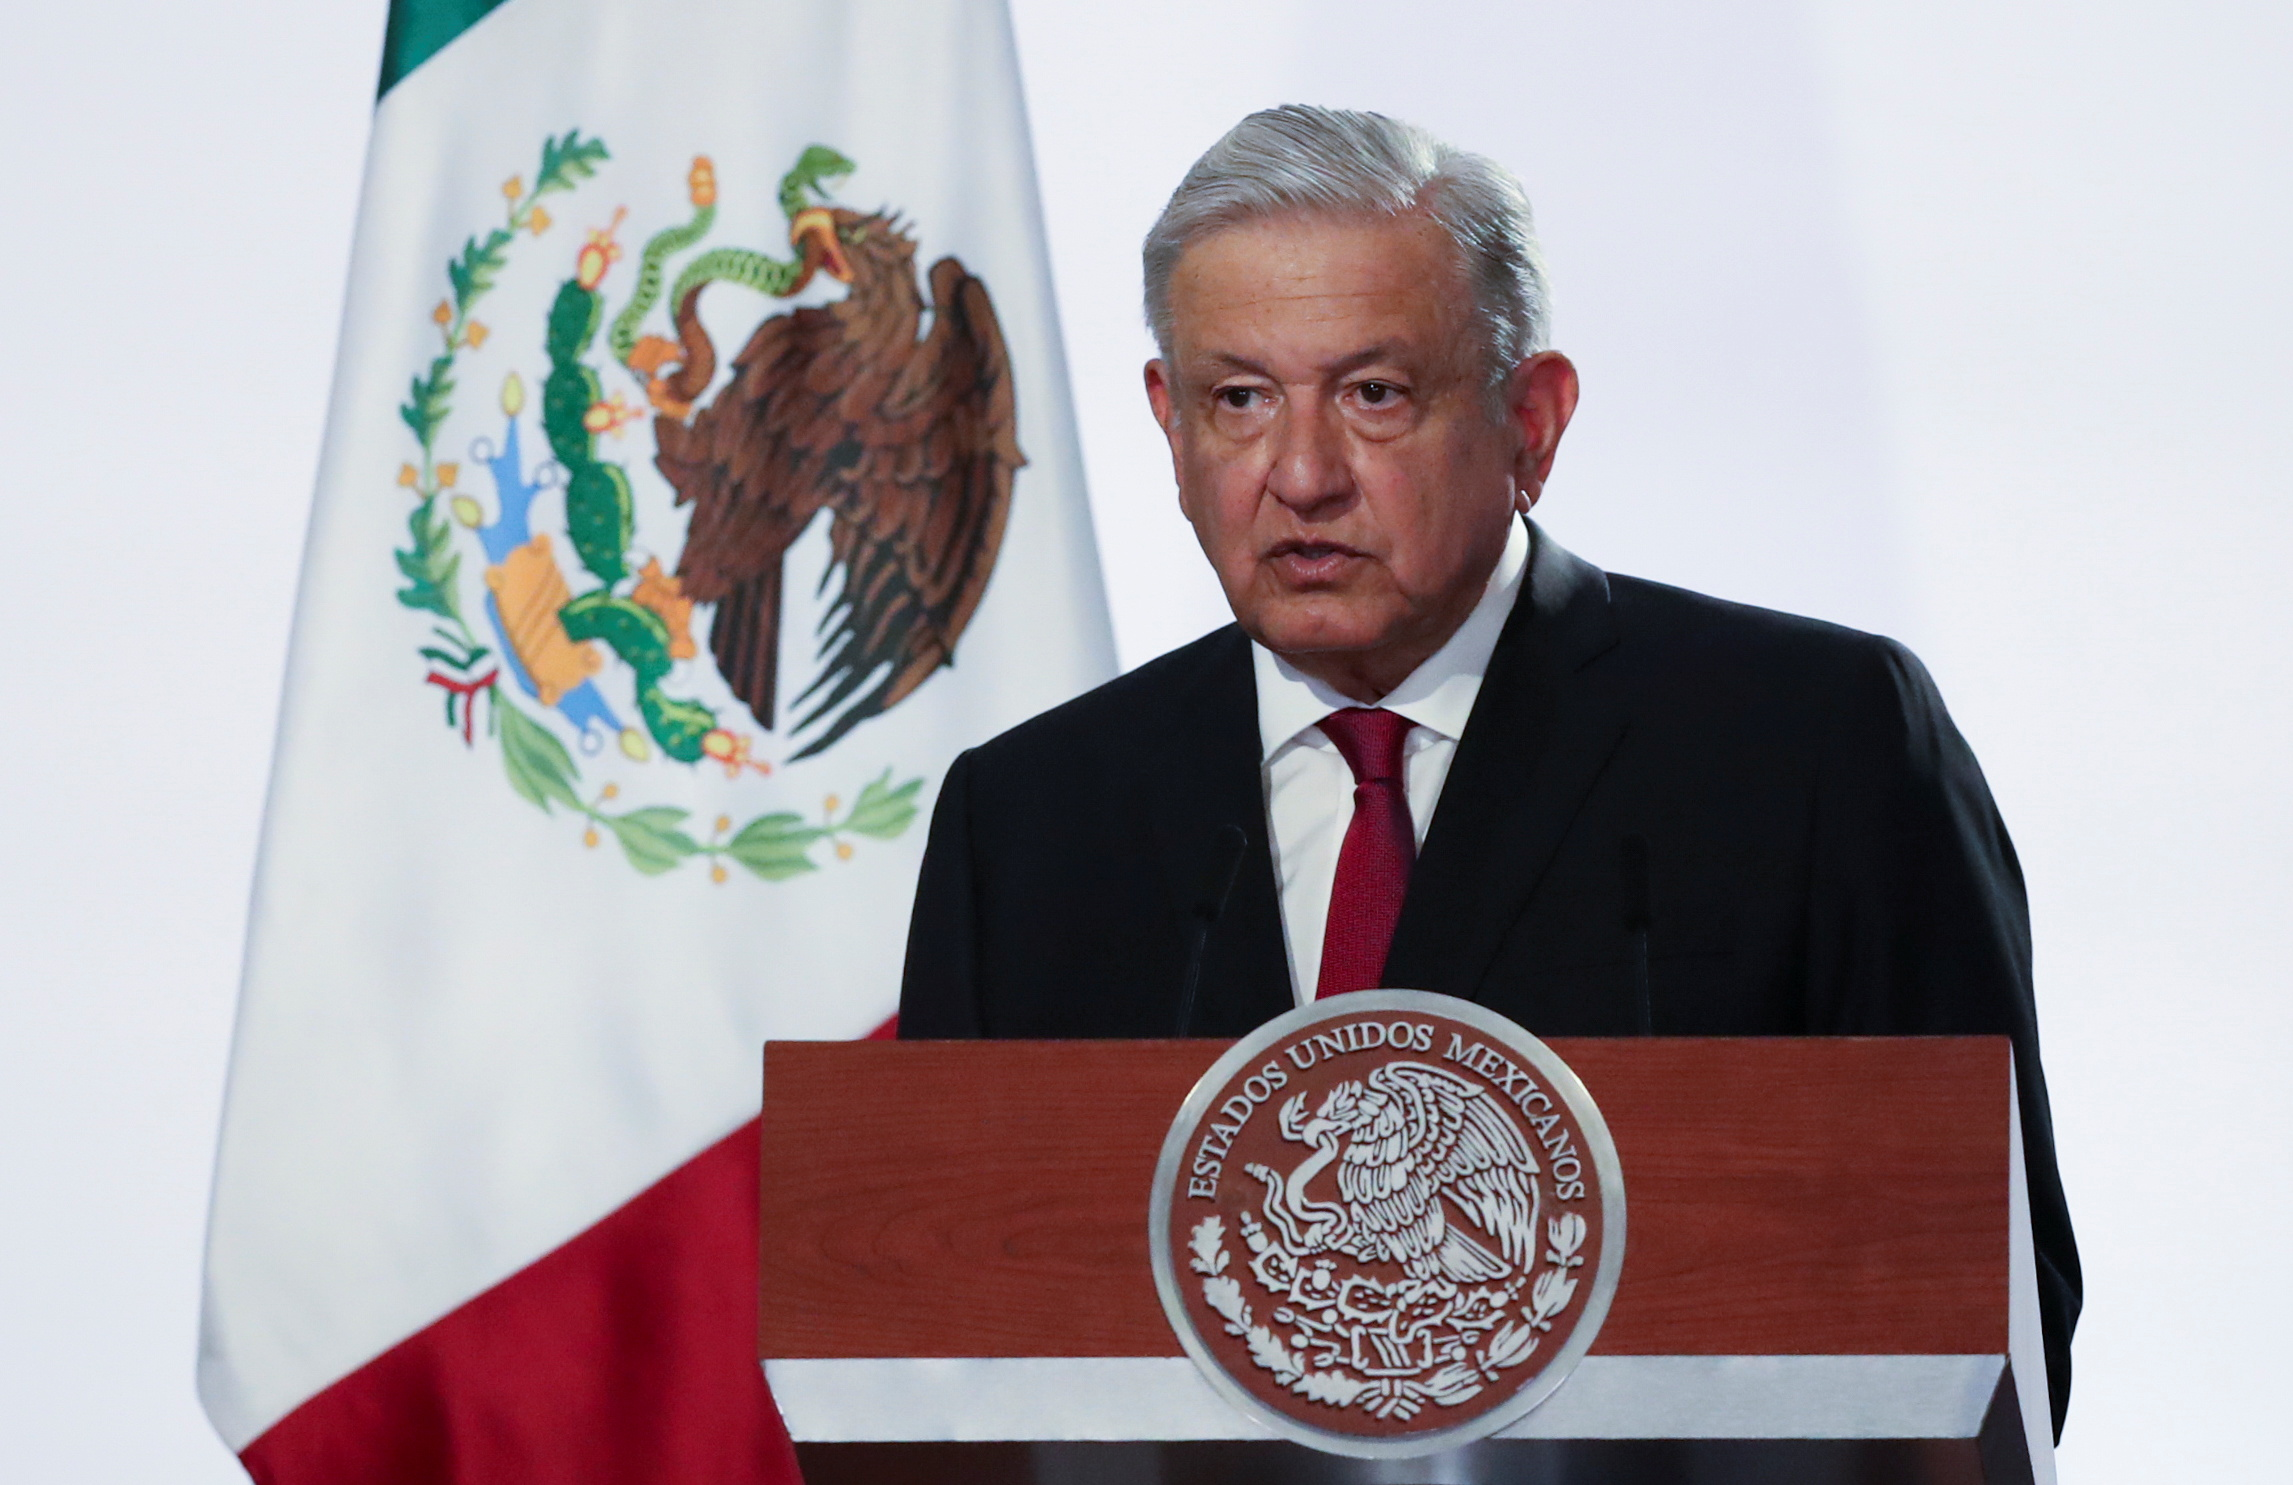 Mexico's President Andres Manuel Lopez Obrador speaks during a ceremony to deliver his third state of the union address at the National Palace in Mexico City, Mexico September 1, 2021. REUTERS/Edgard Garrido